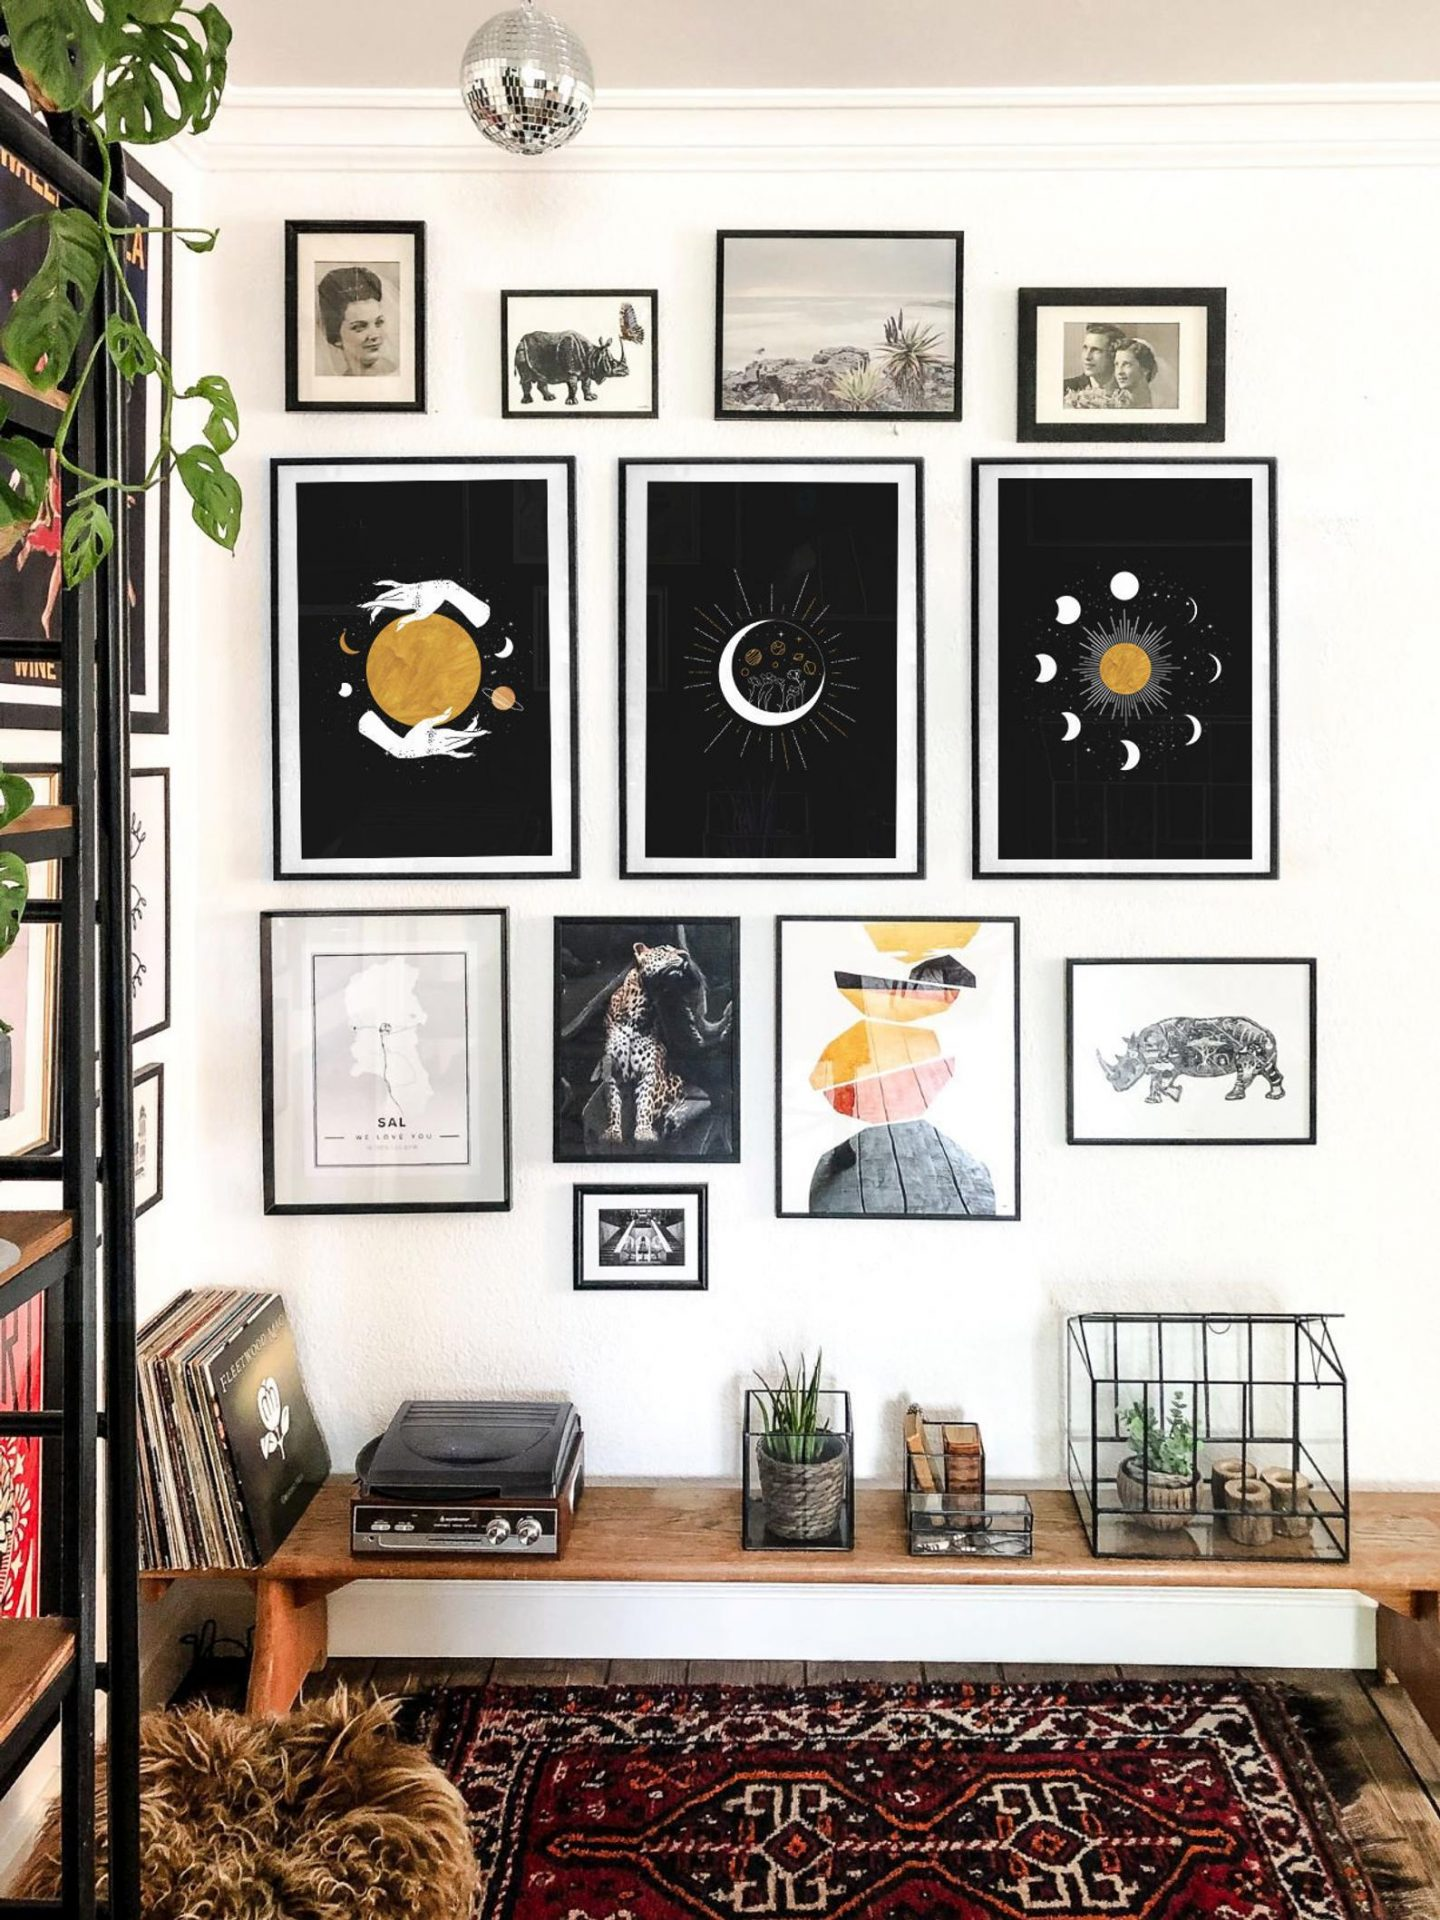 Black sky wall decor poster set with moon and stars